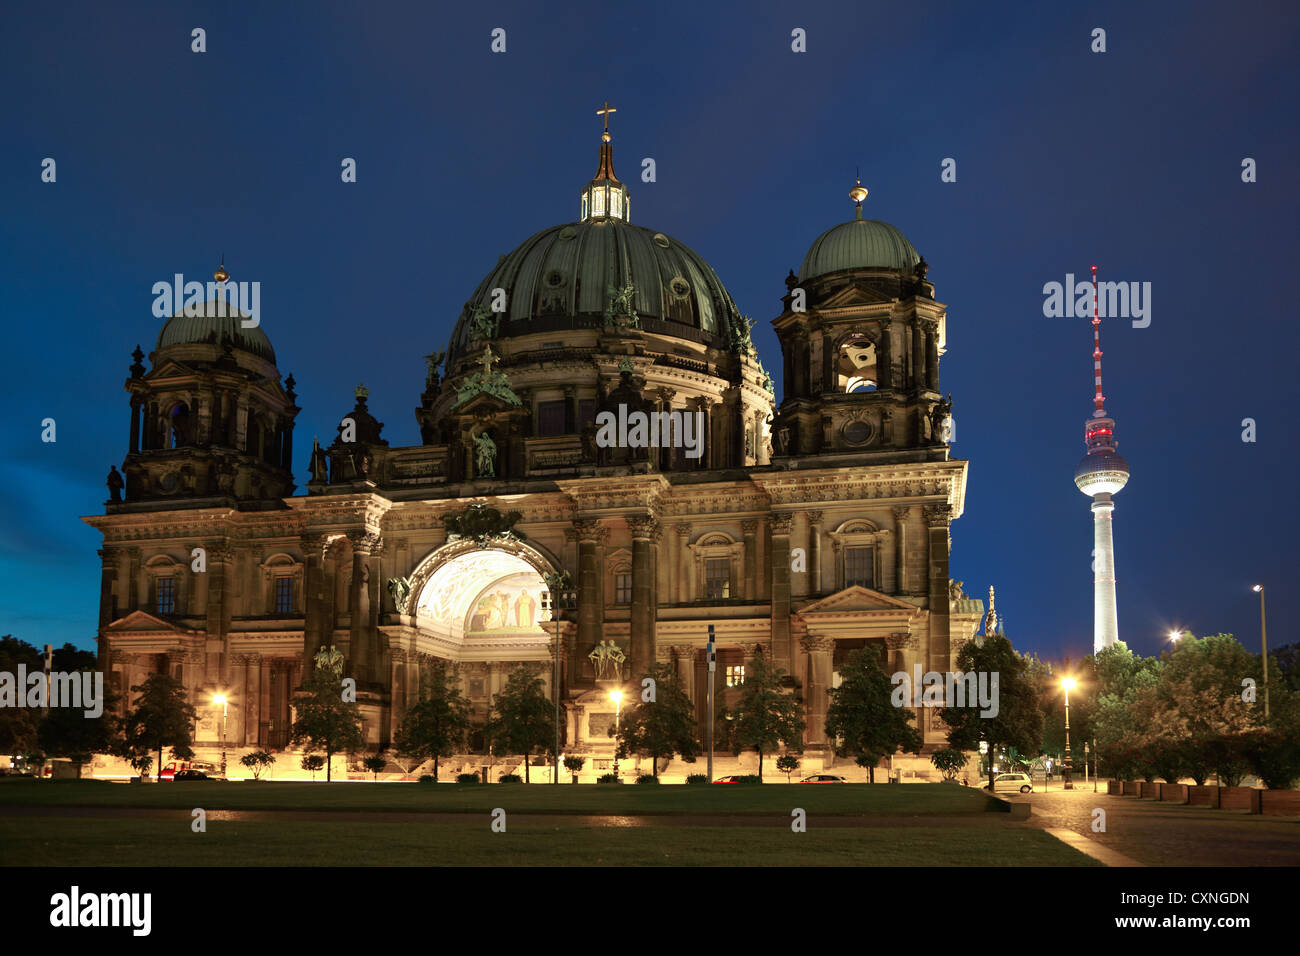 Berlin cathedral or Berliner Dom at night, Germany - Stock Image